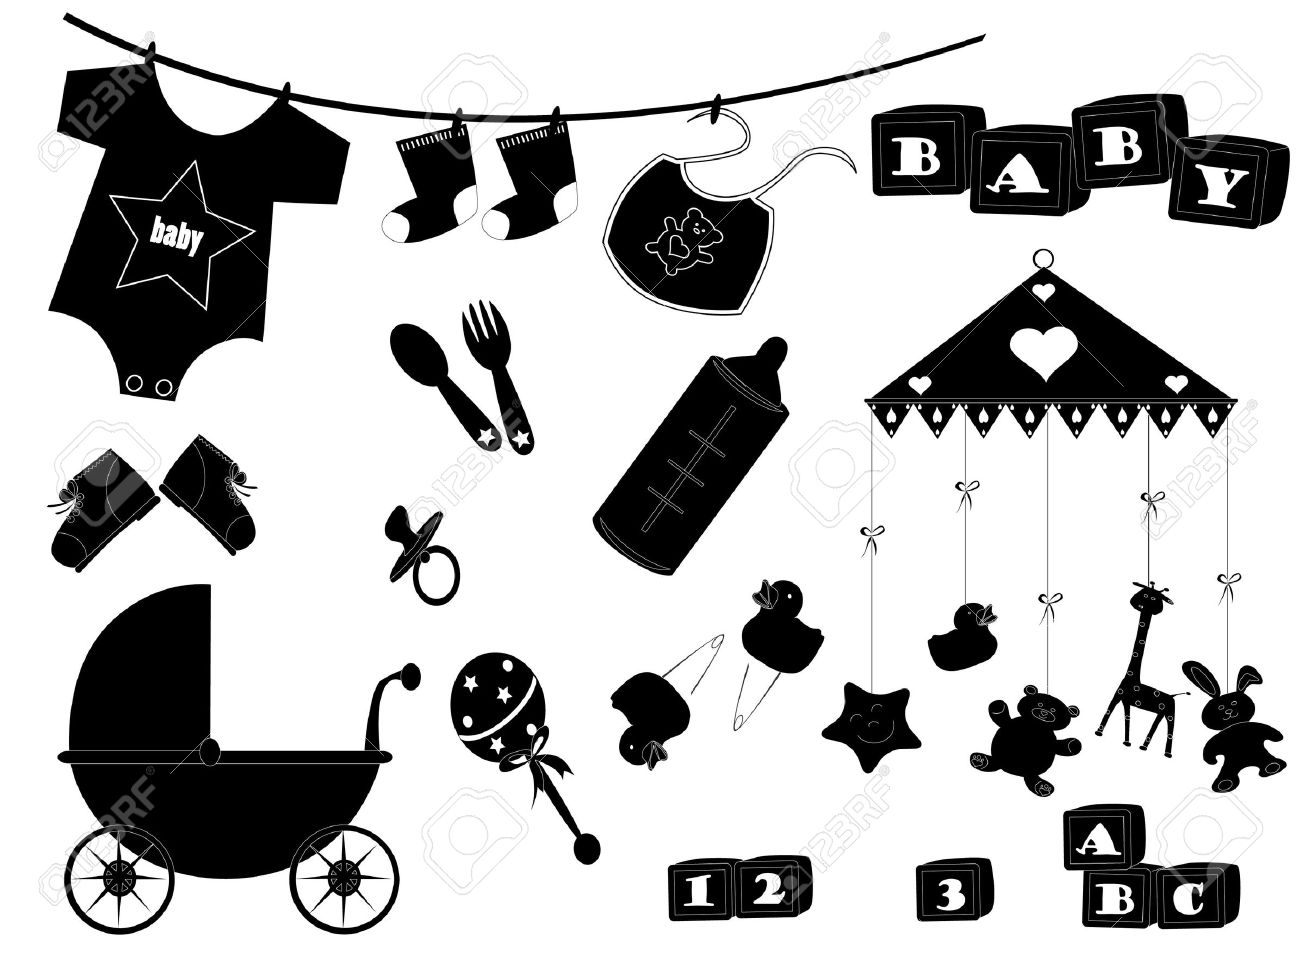 baby rattle silhouette clipart - Clipground